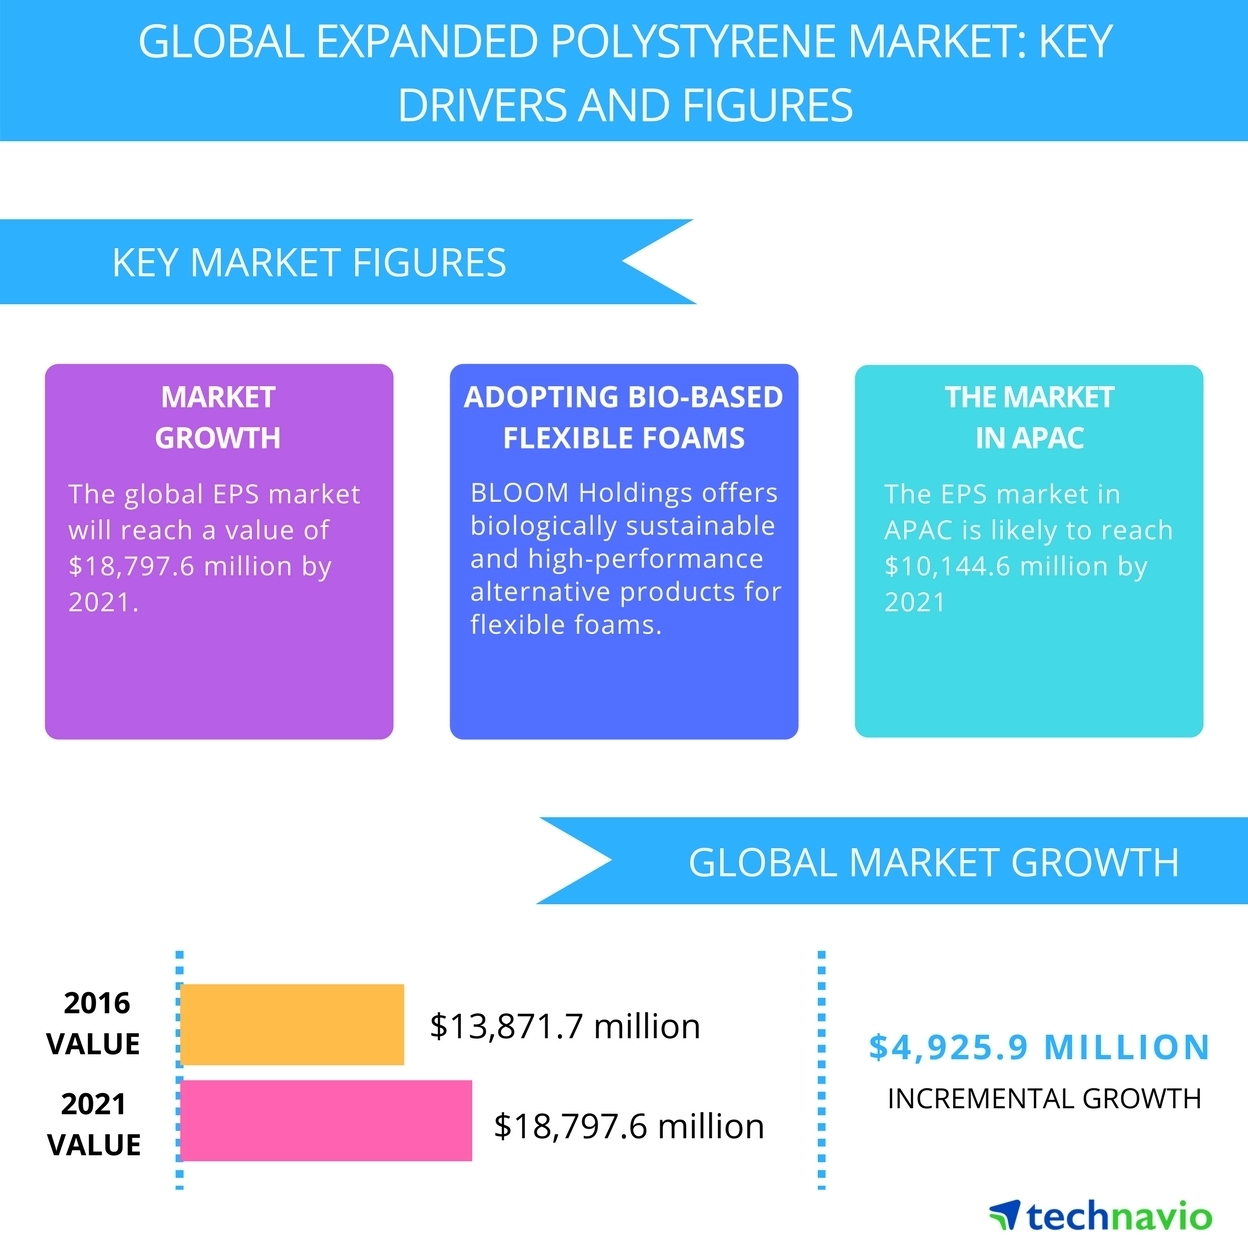 Technavio has published a new report on the global expanded polystyrene market from 2017-2021. (Graphic: Business Wire)